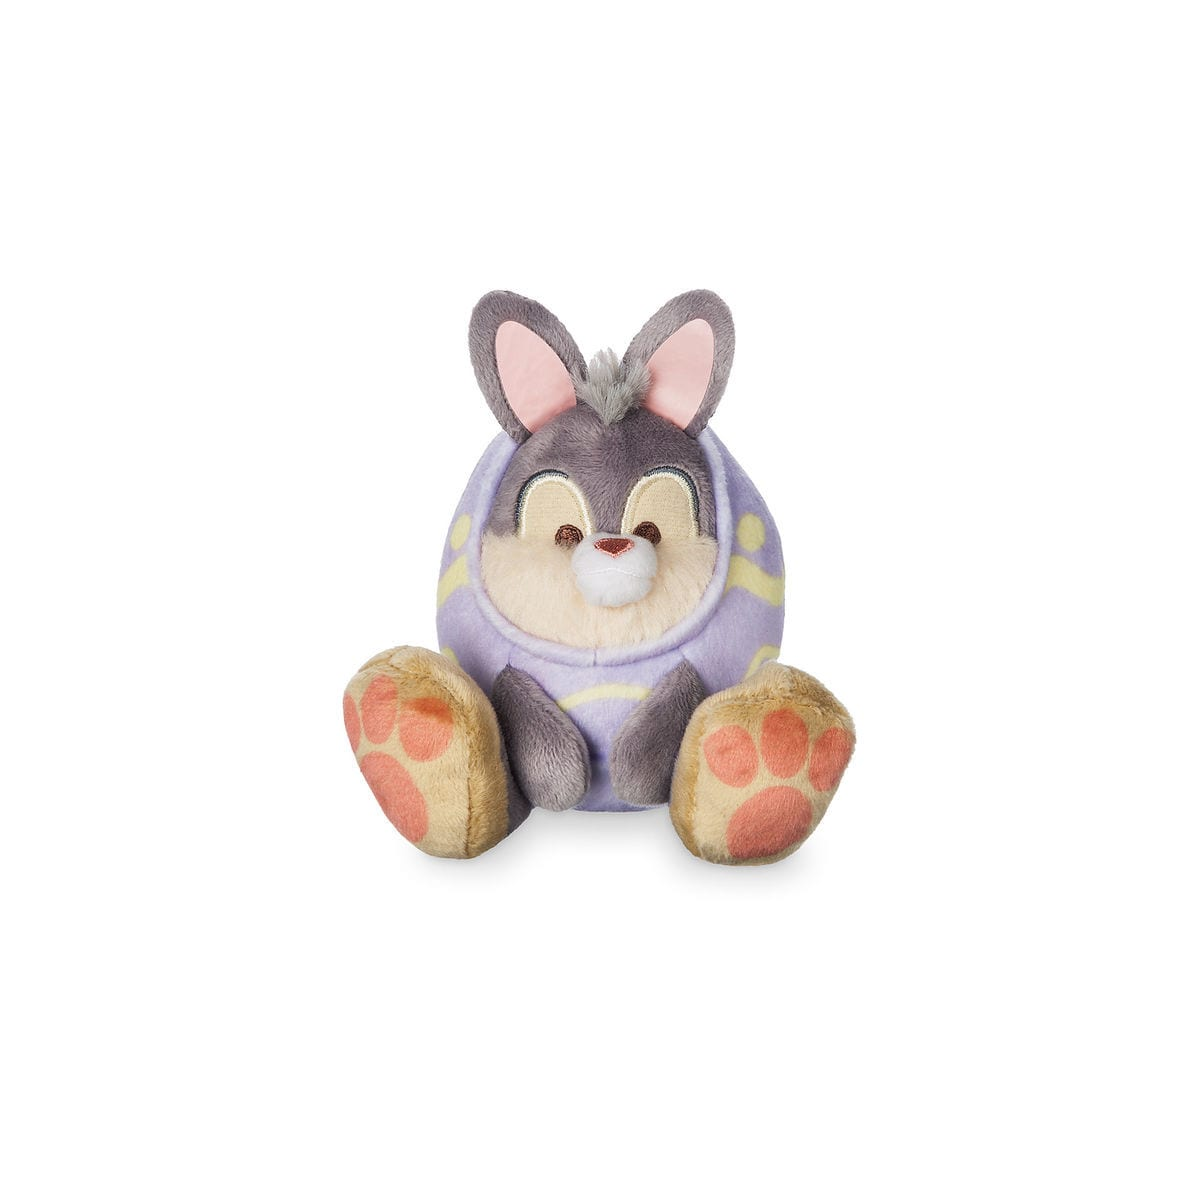 Disney Bambi Thumper Tiny Big Feet Plush Micro Easter New with Tags